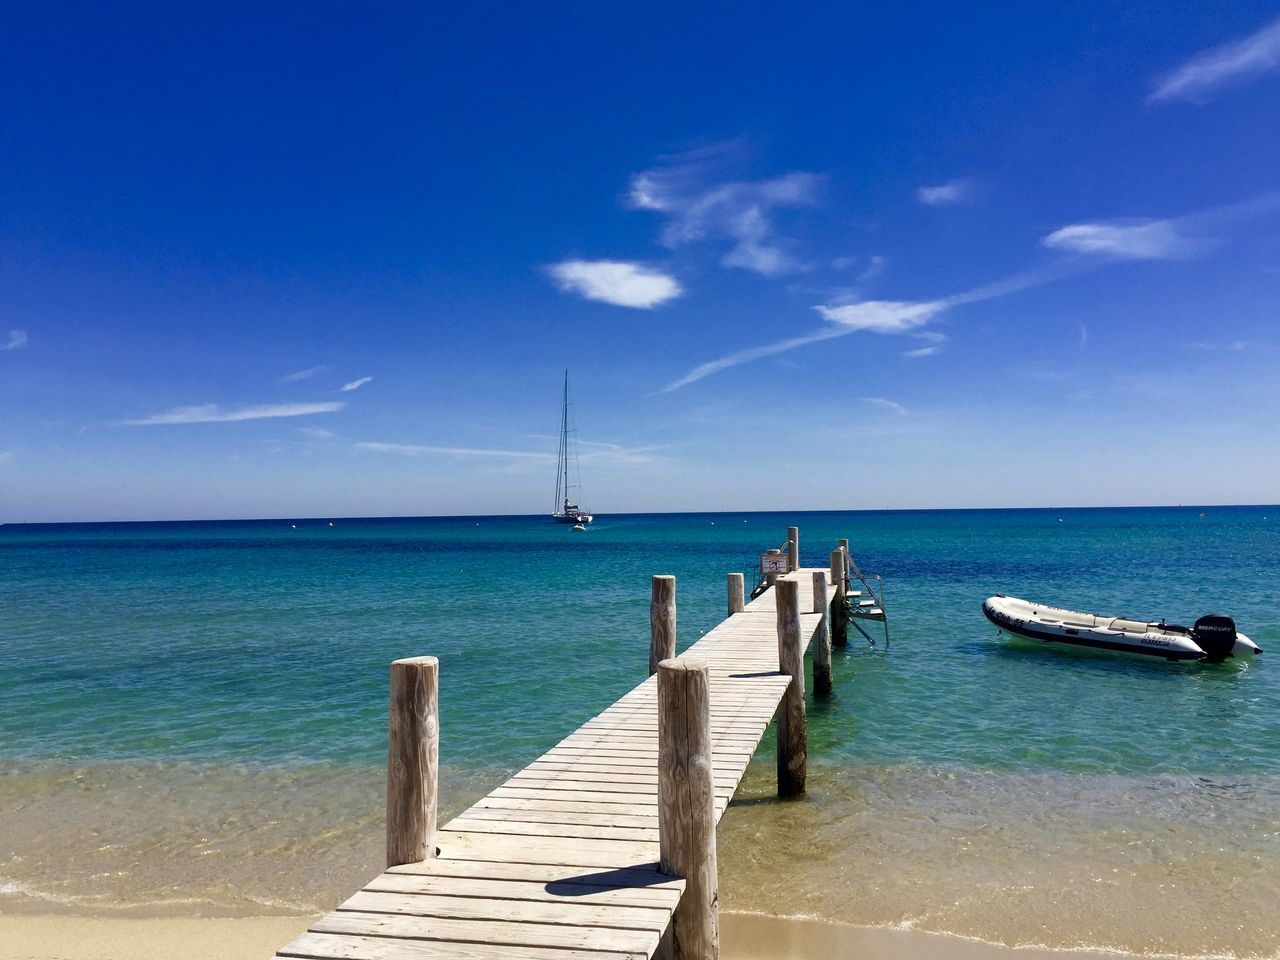 sea, horizon over water, sky, blue, water, beauty in nature, scenics, tranquility, sunlight, tranquil scene, nature, day, outdoors, no people, beach, nautical vessel